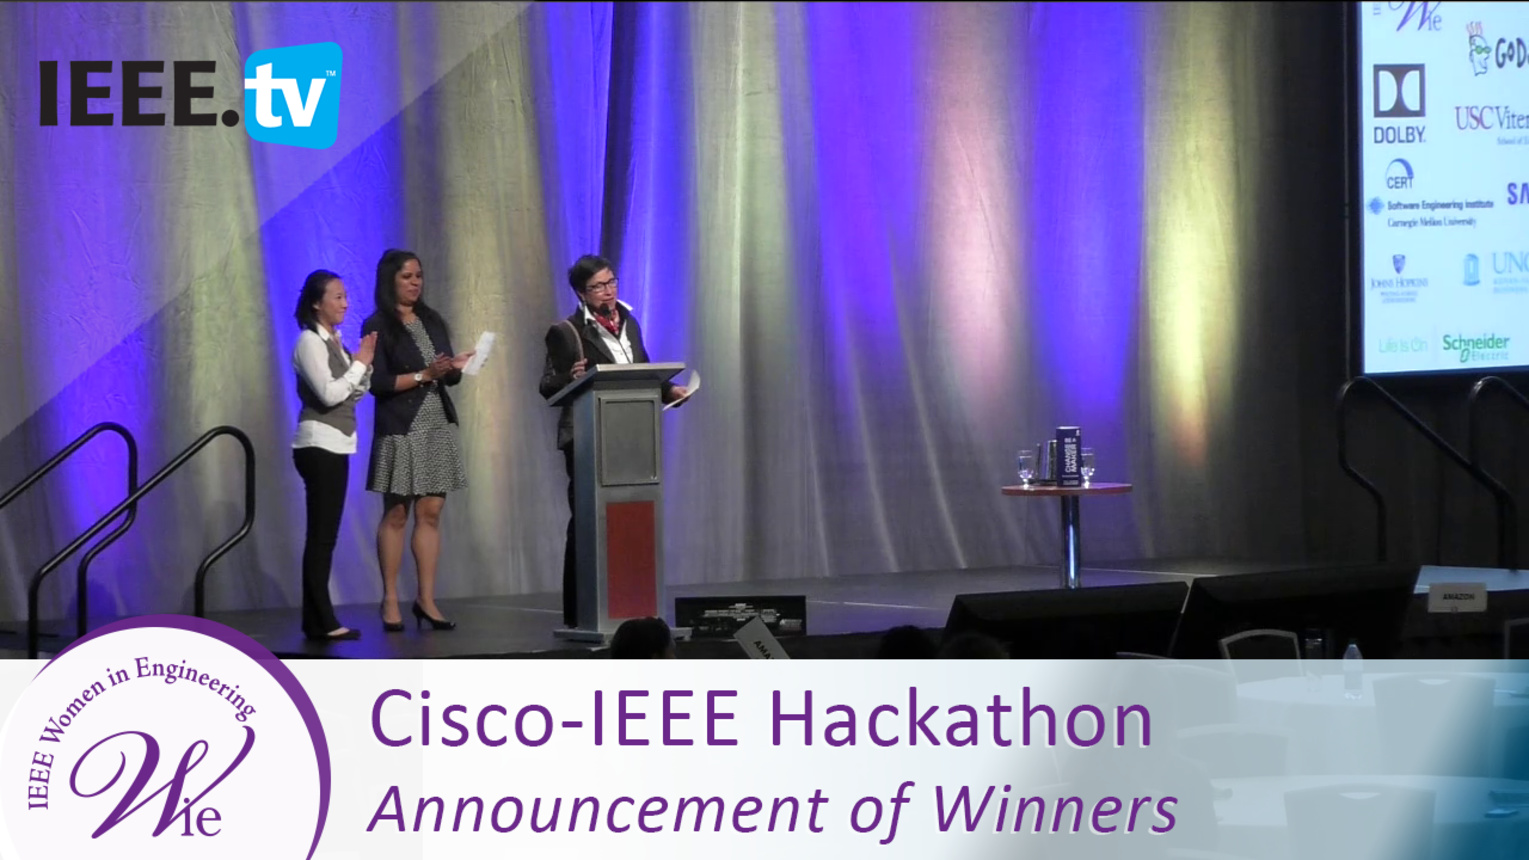 Cisco-IEEE Hackathon Winners - 2016 Women in Engineering Conference